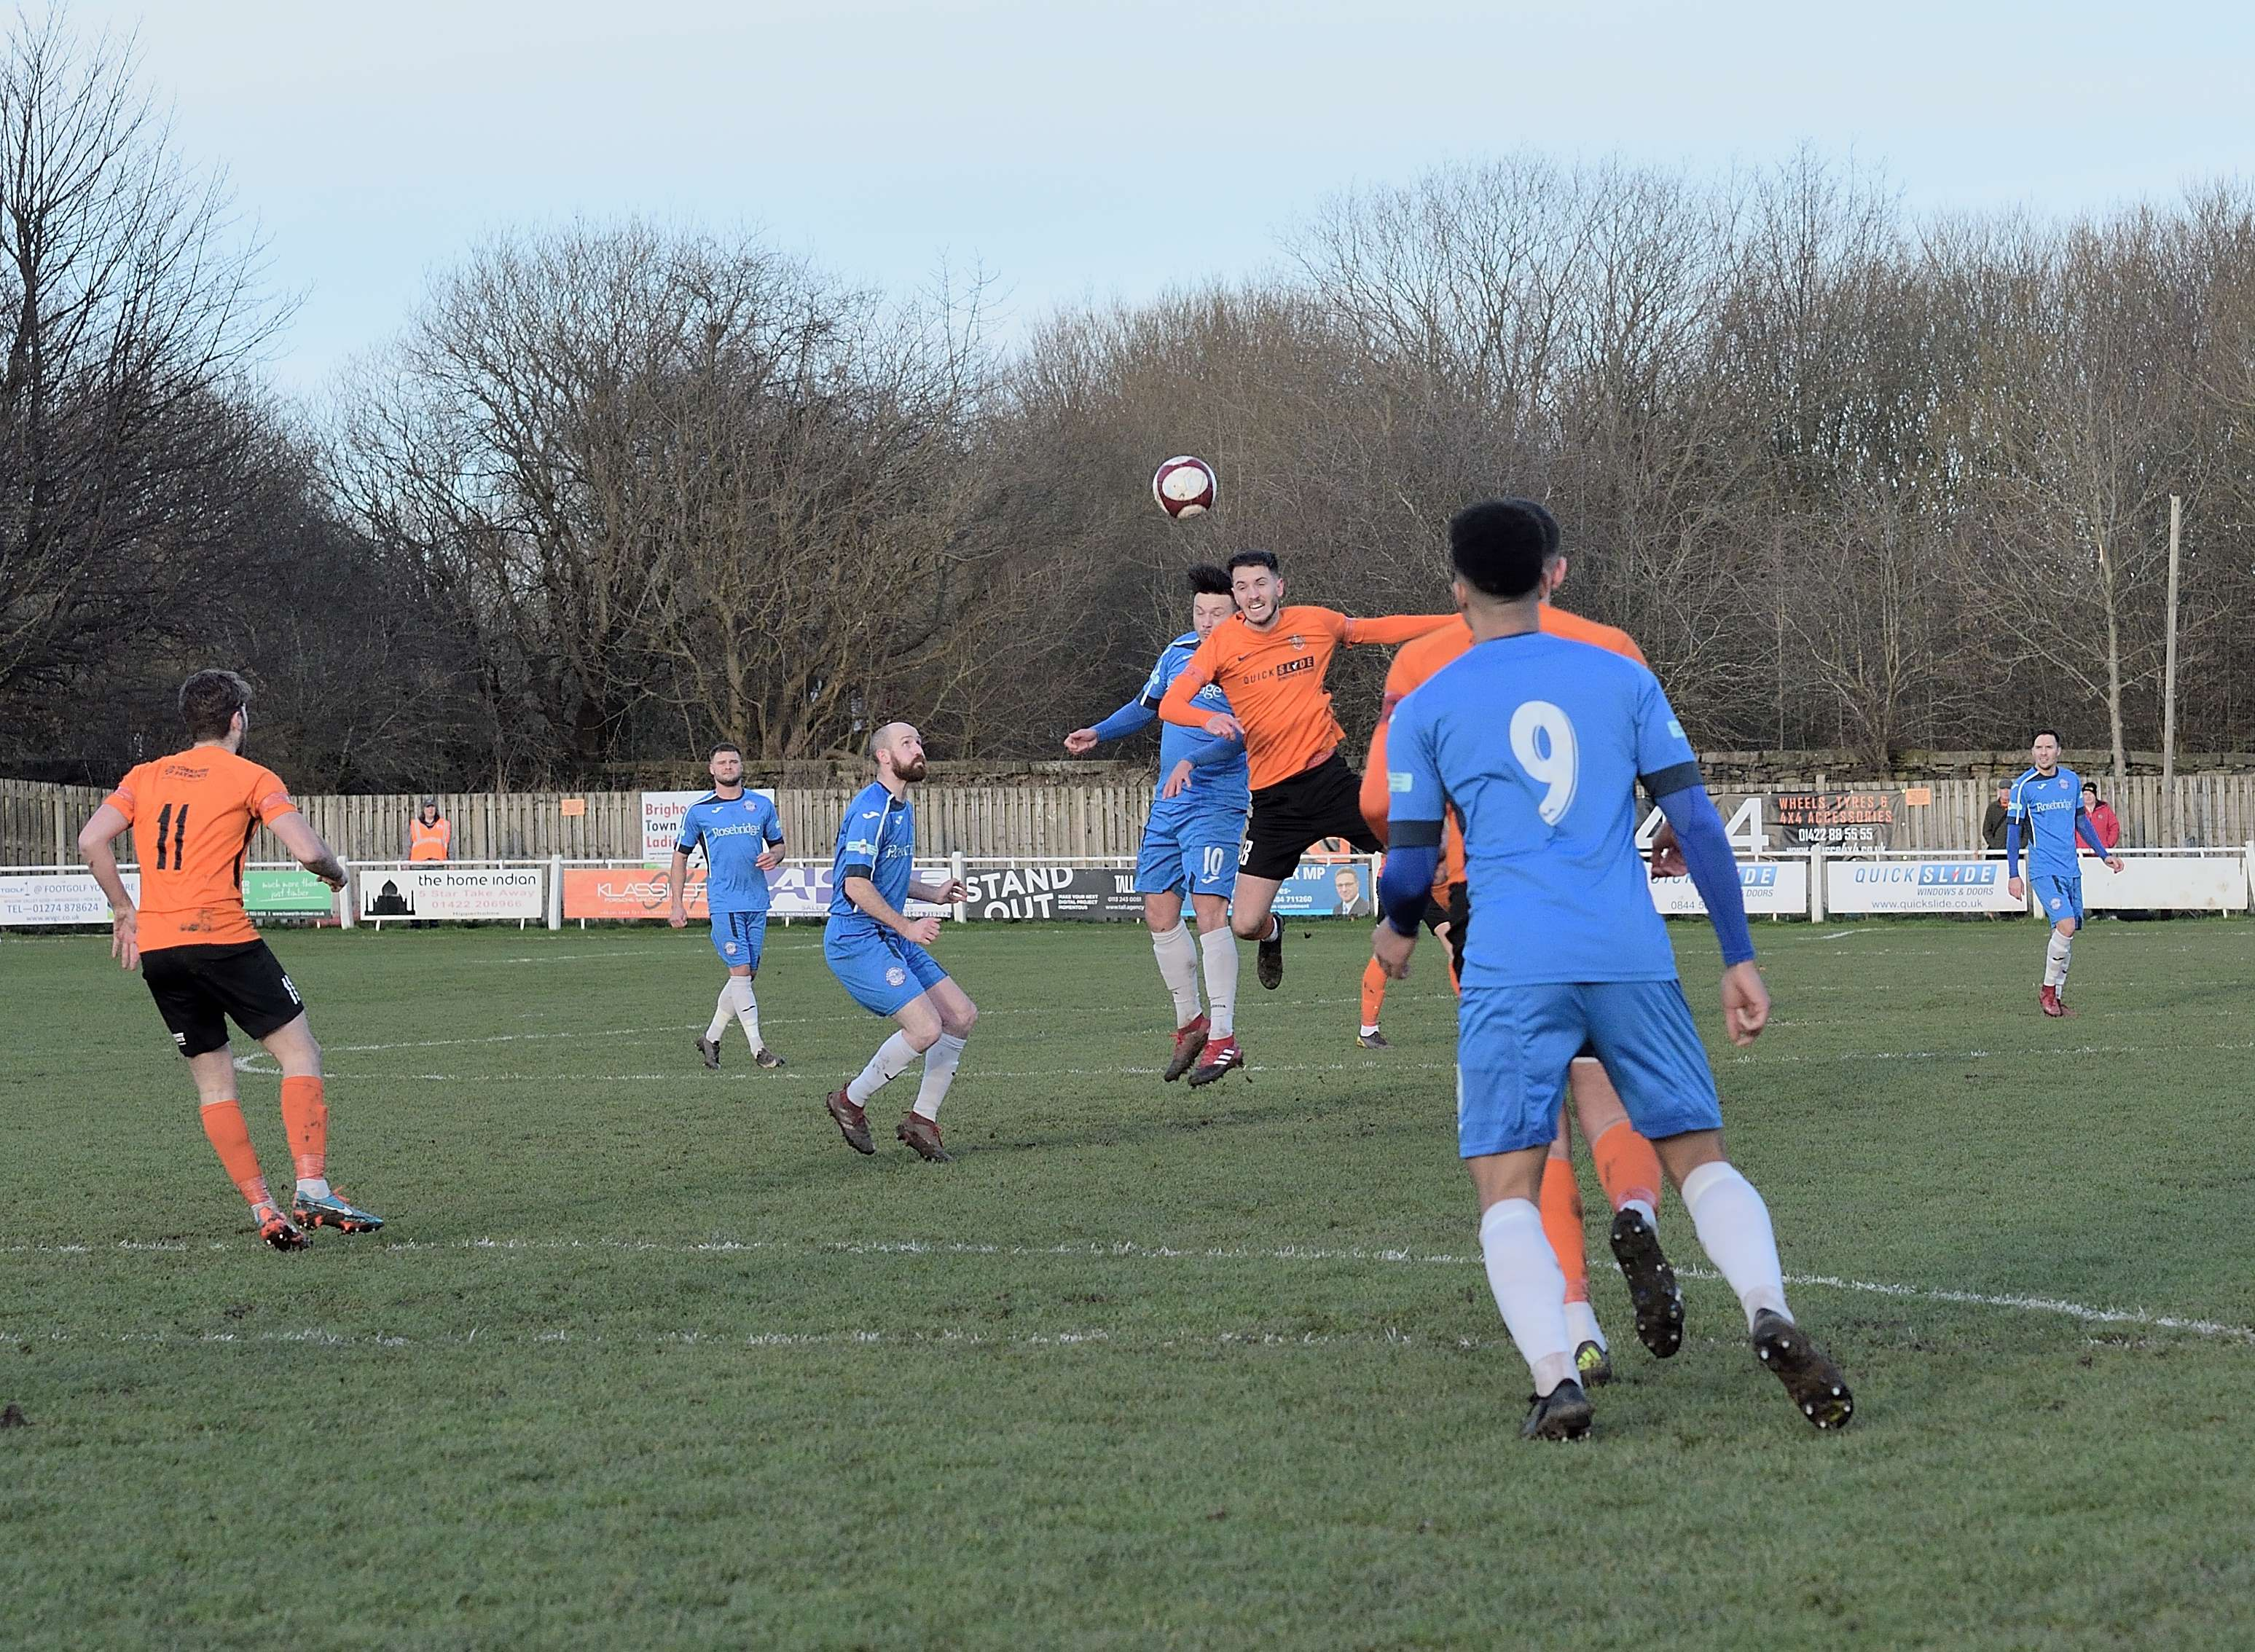 Brighouse 2 Rams 3 - Match Action